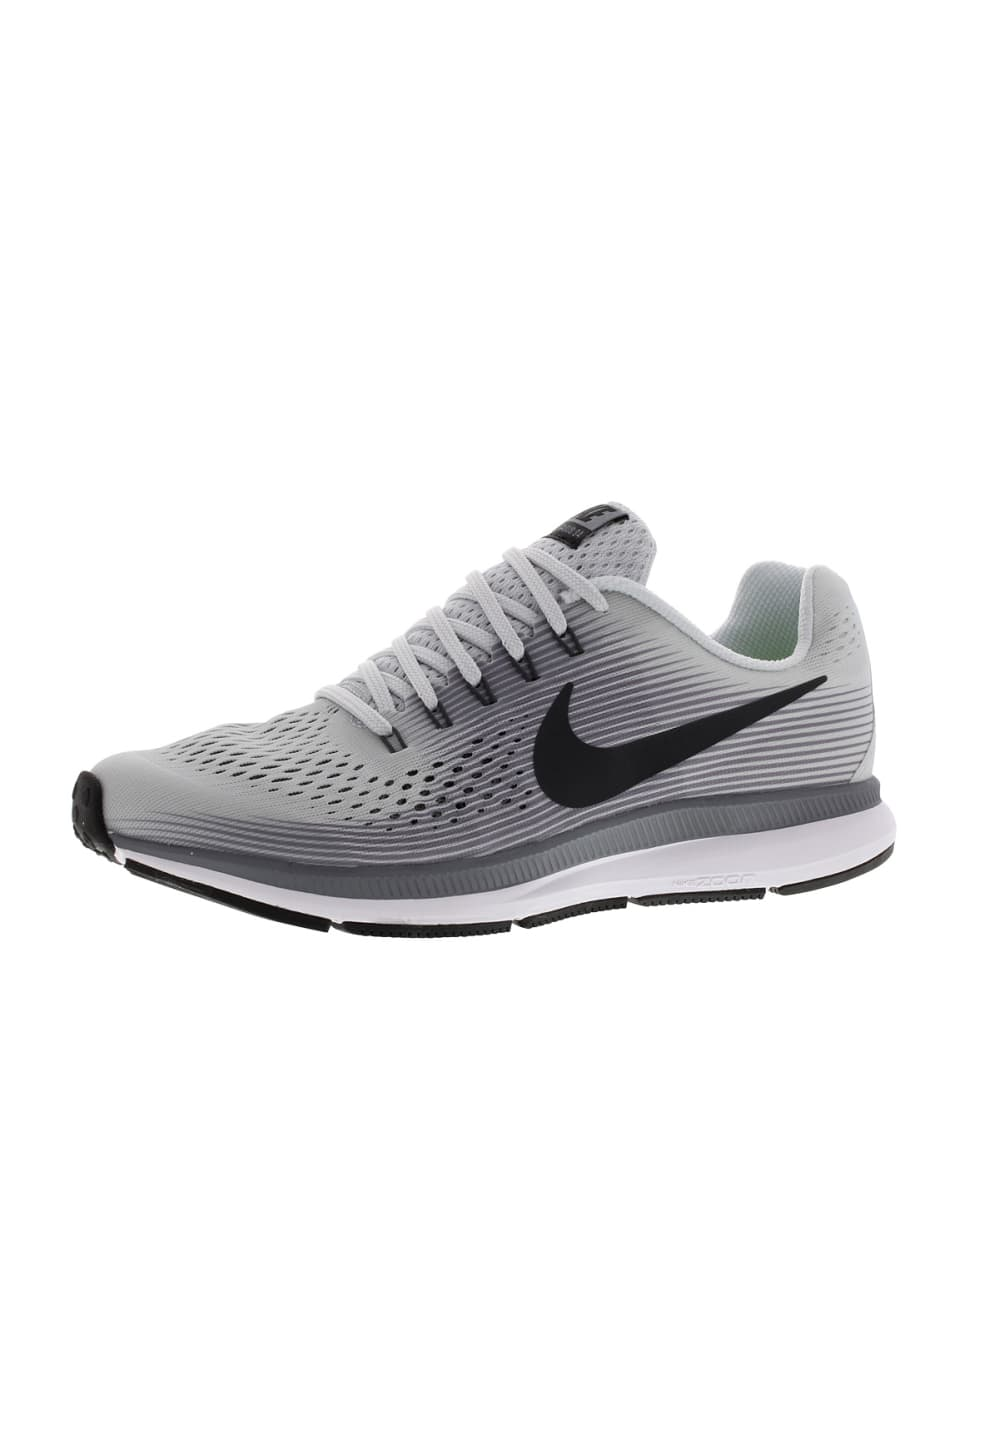 9641ce1218cc Next. -35%. This product is currently out of stock. Nike. Zoom Pegasus 34  GS Boys - Running shoes